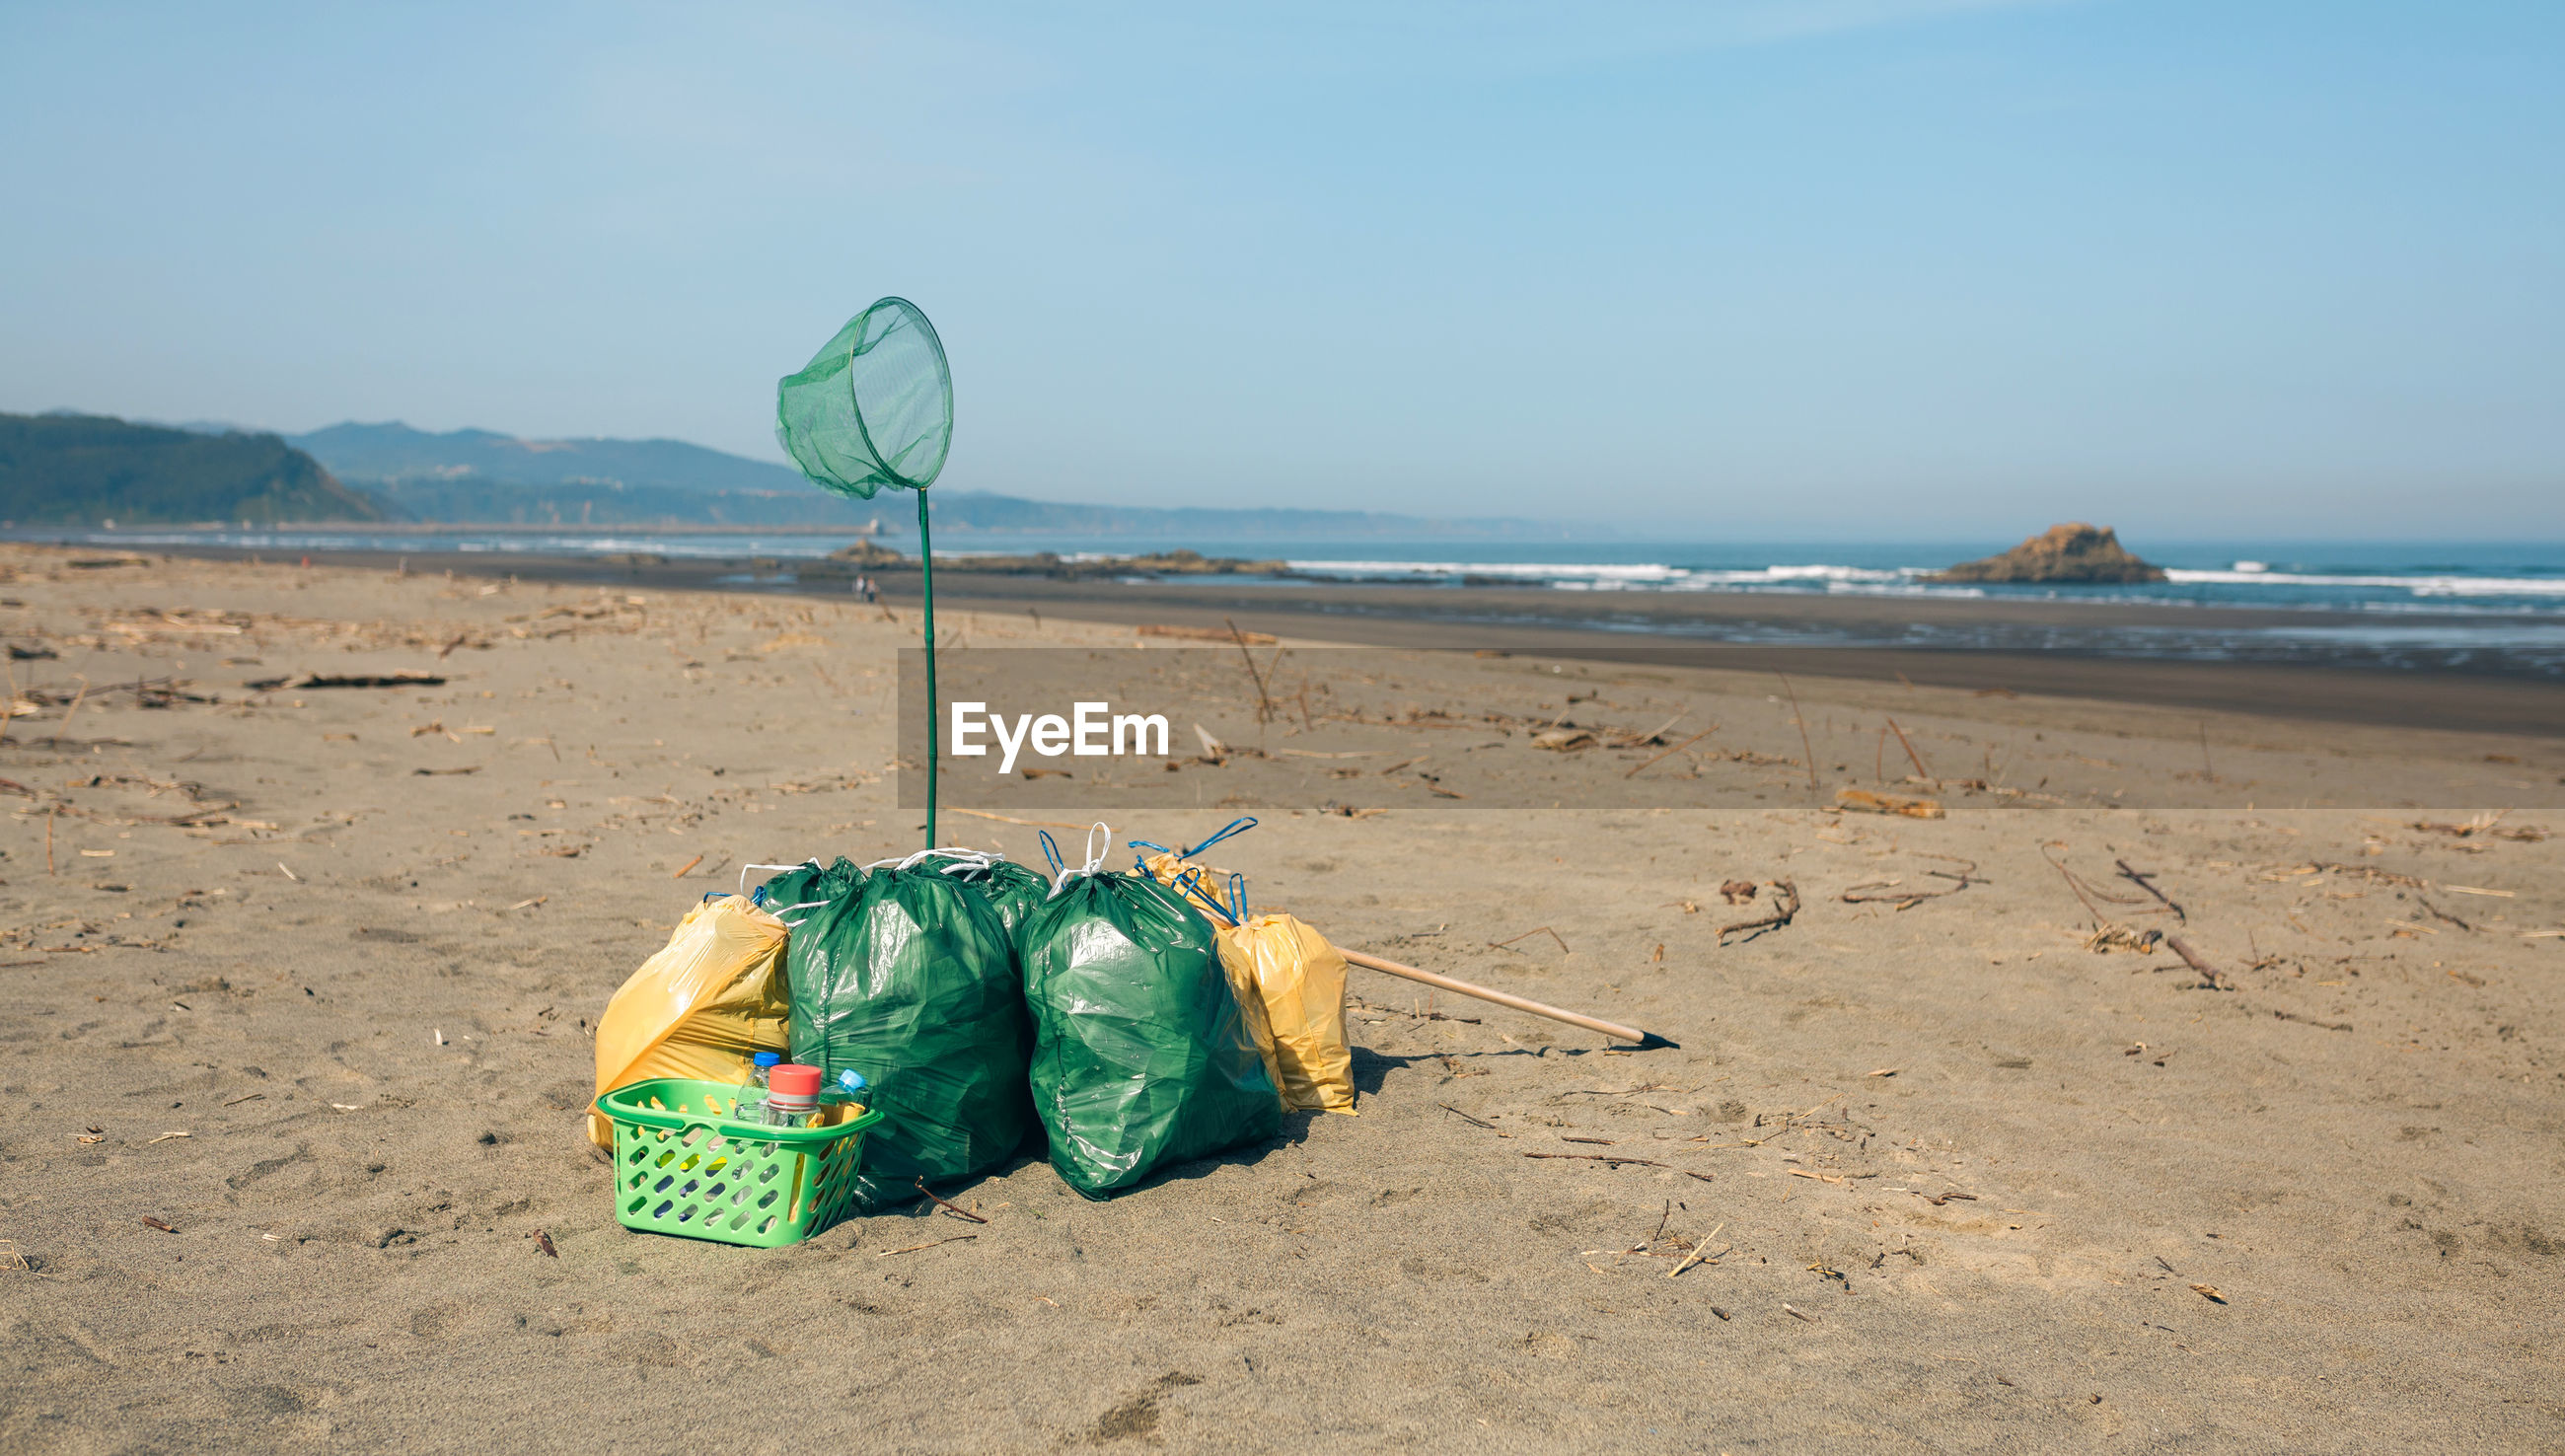 GREEN CONTAINER ON BEACH AGAINST SEA